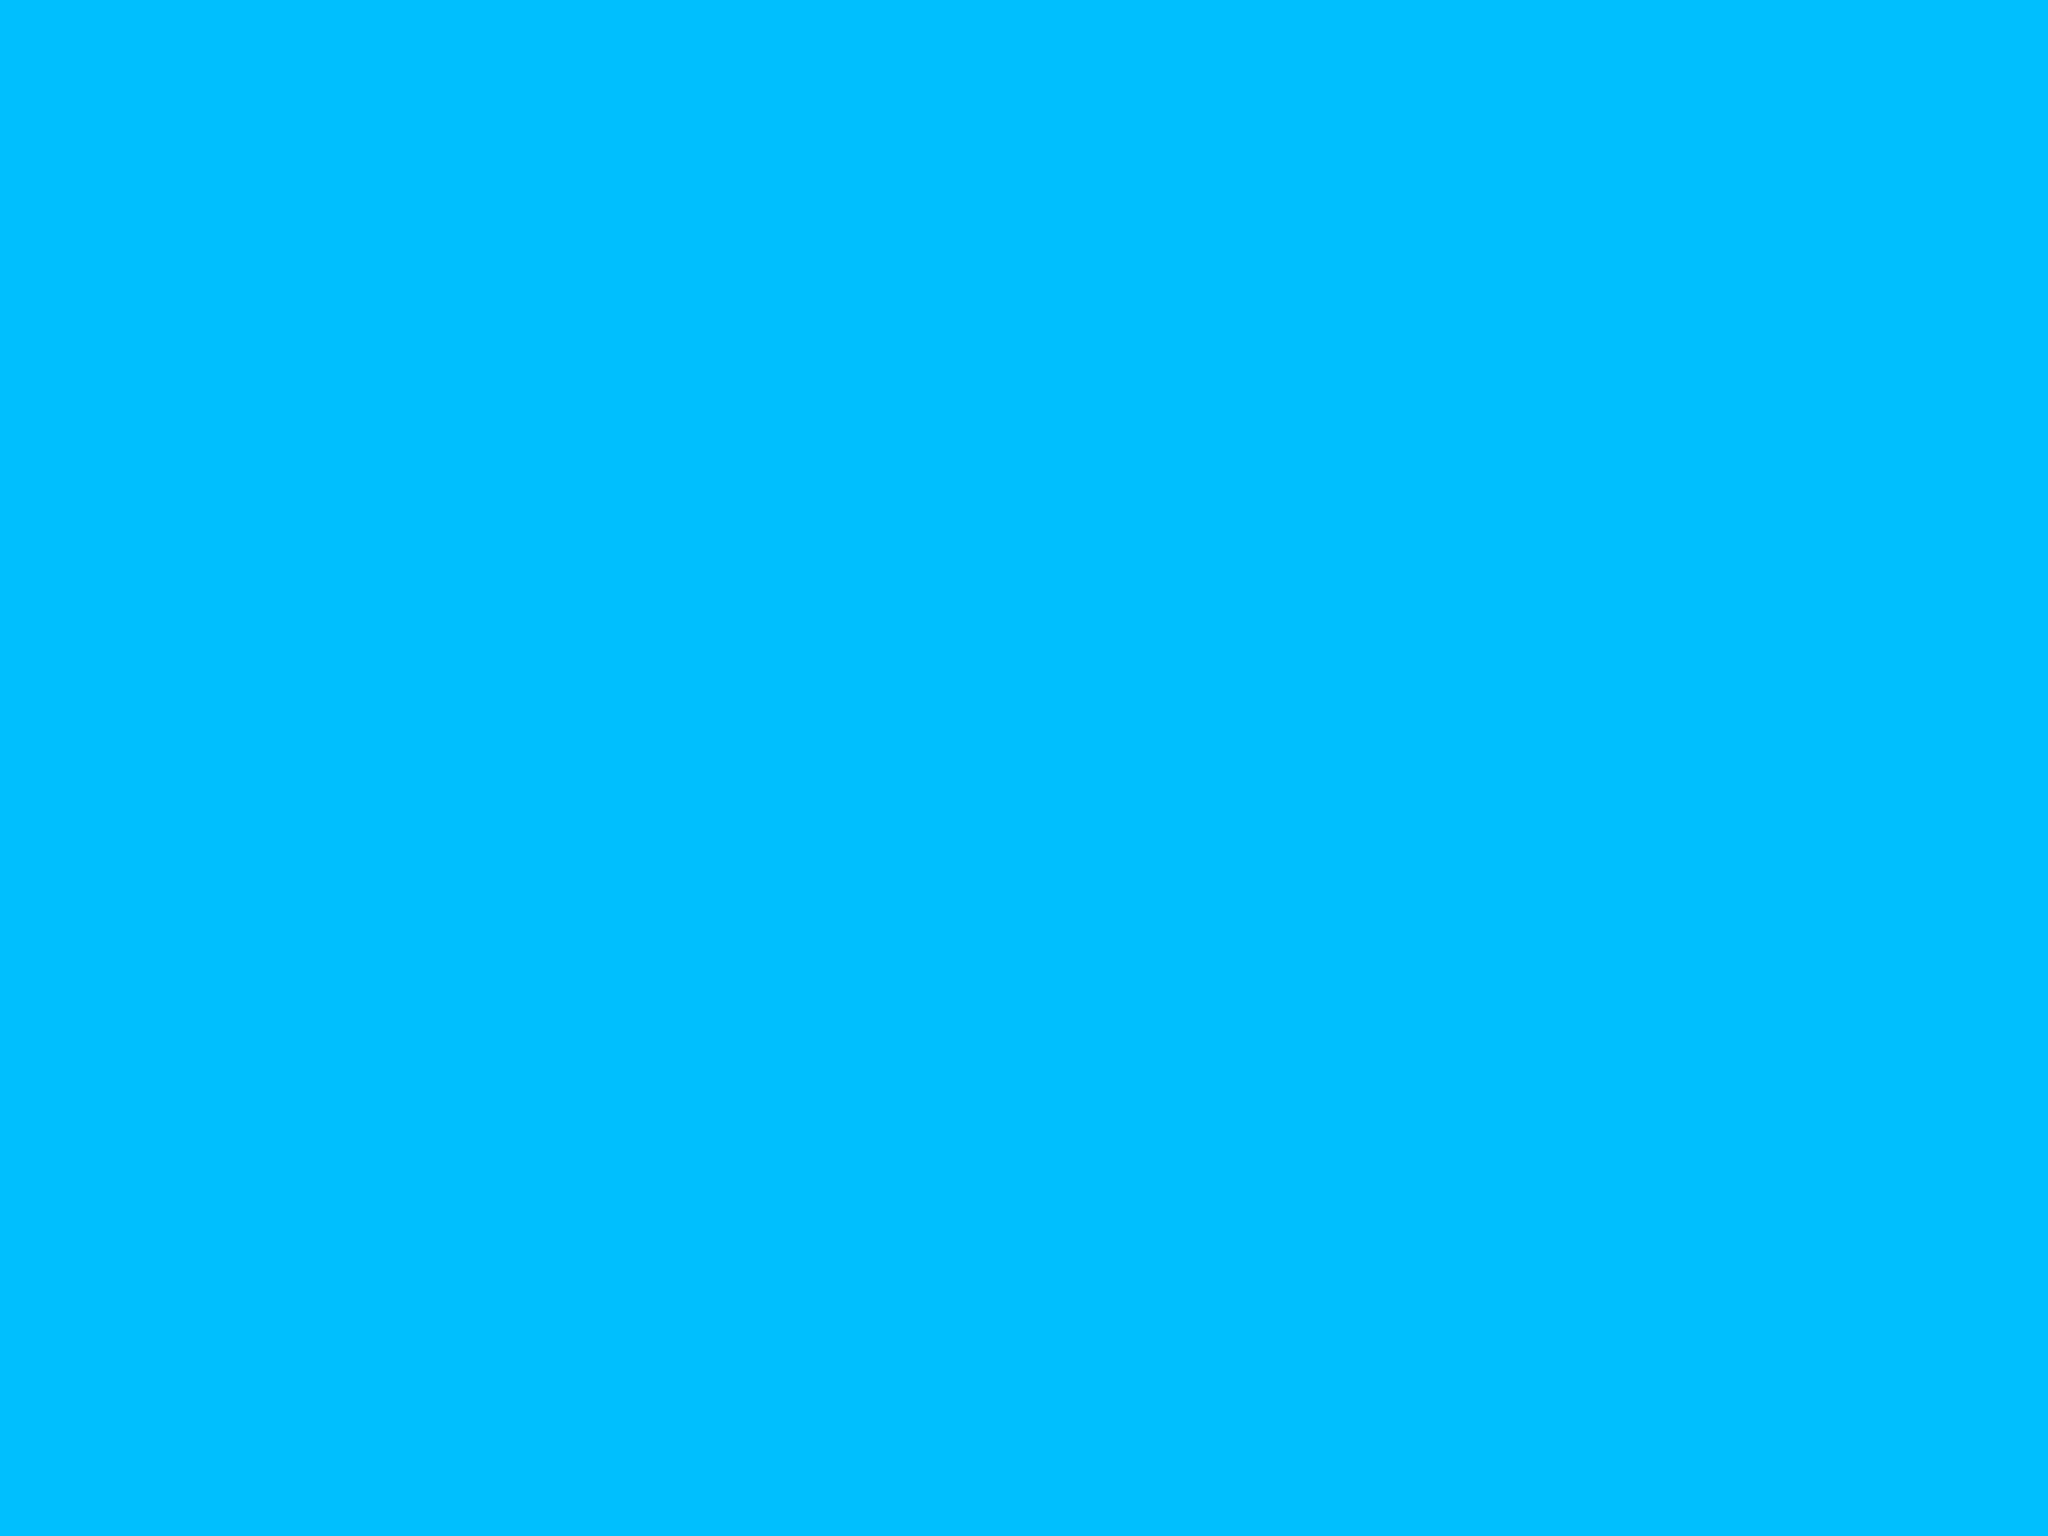 2048x1536 Deep Sky Blue Solid Color Background